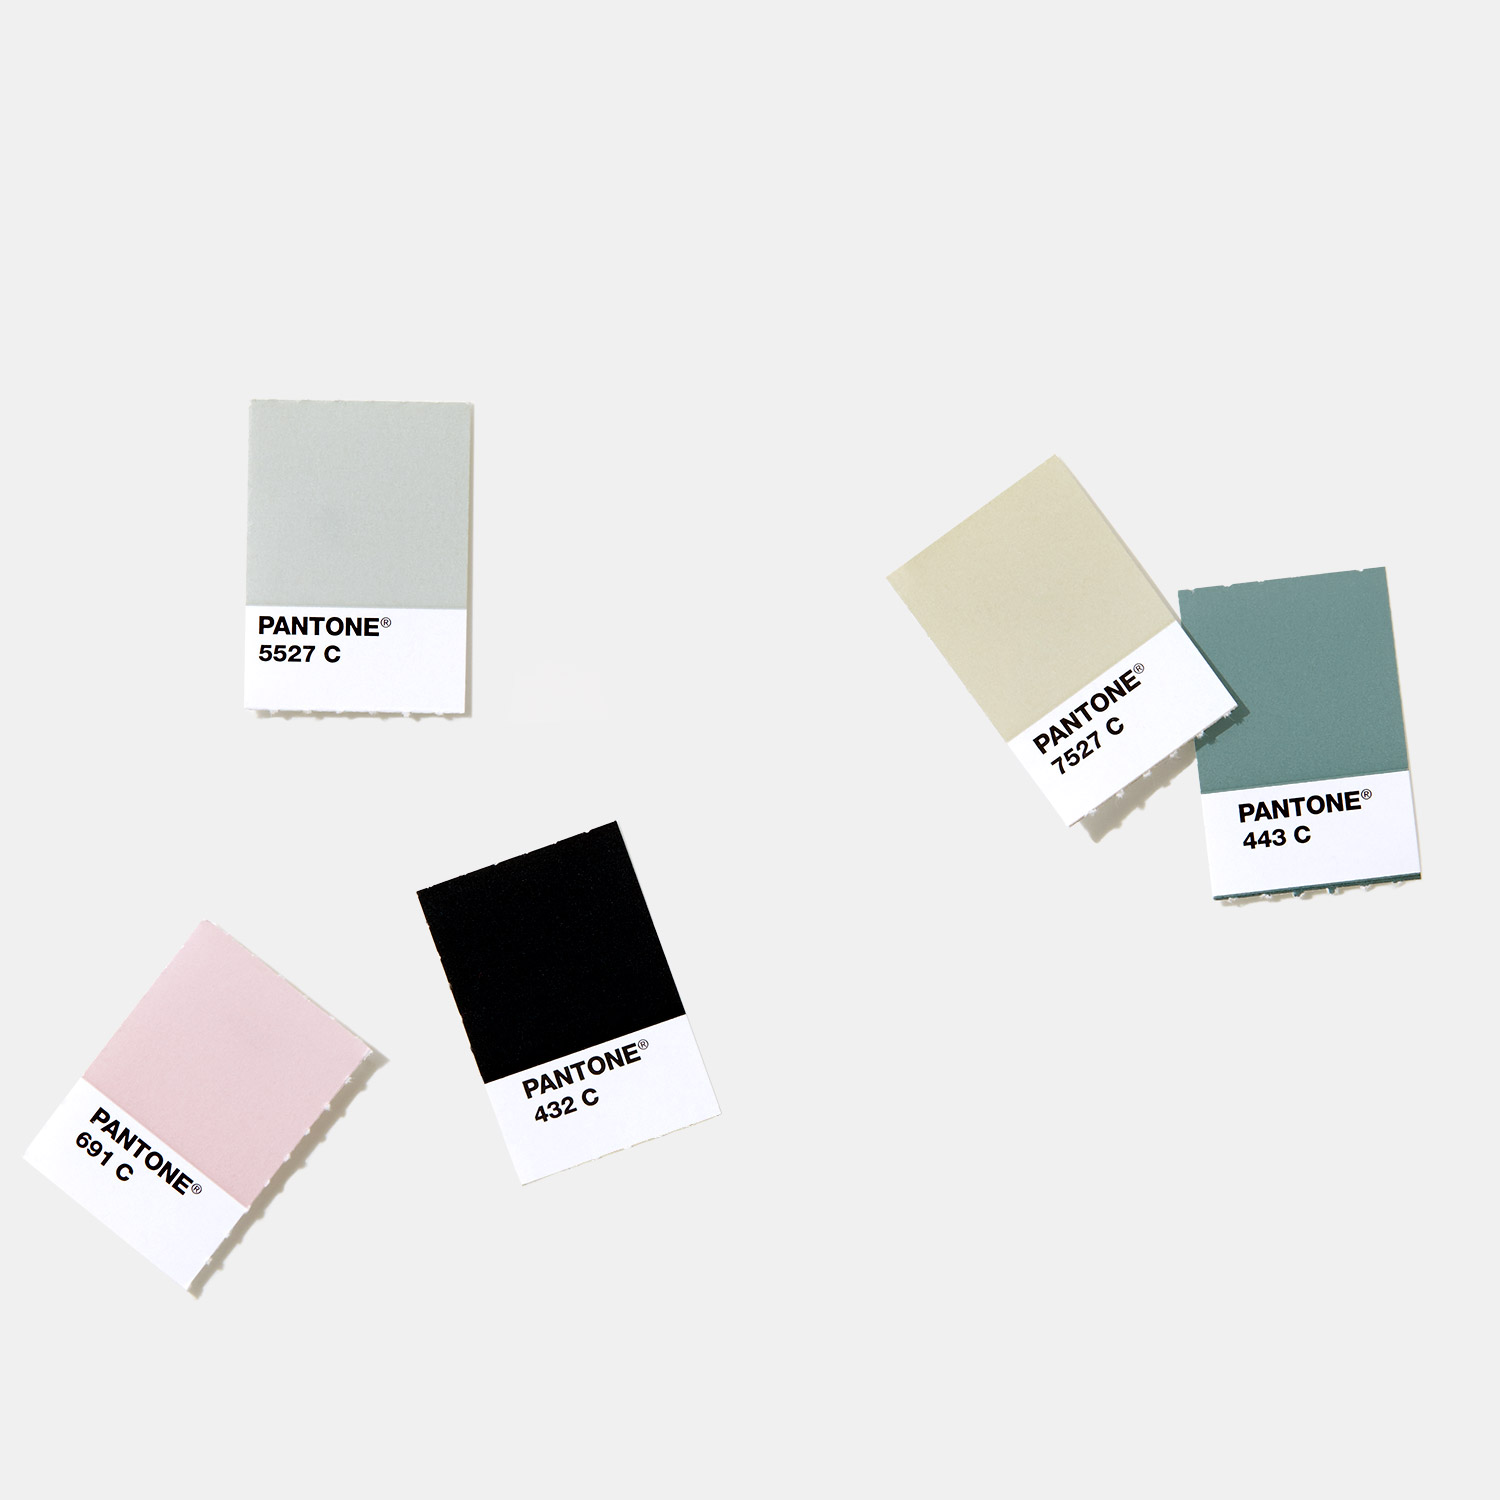 GP1606N-pantone-graphics-pms-spot-colors-solid-chips-coated-uncoated-set-product-6.jpg